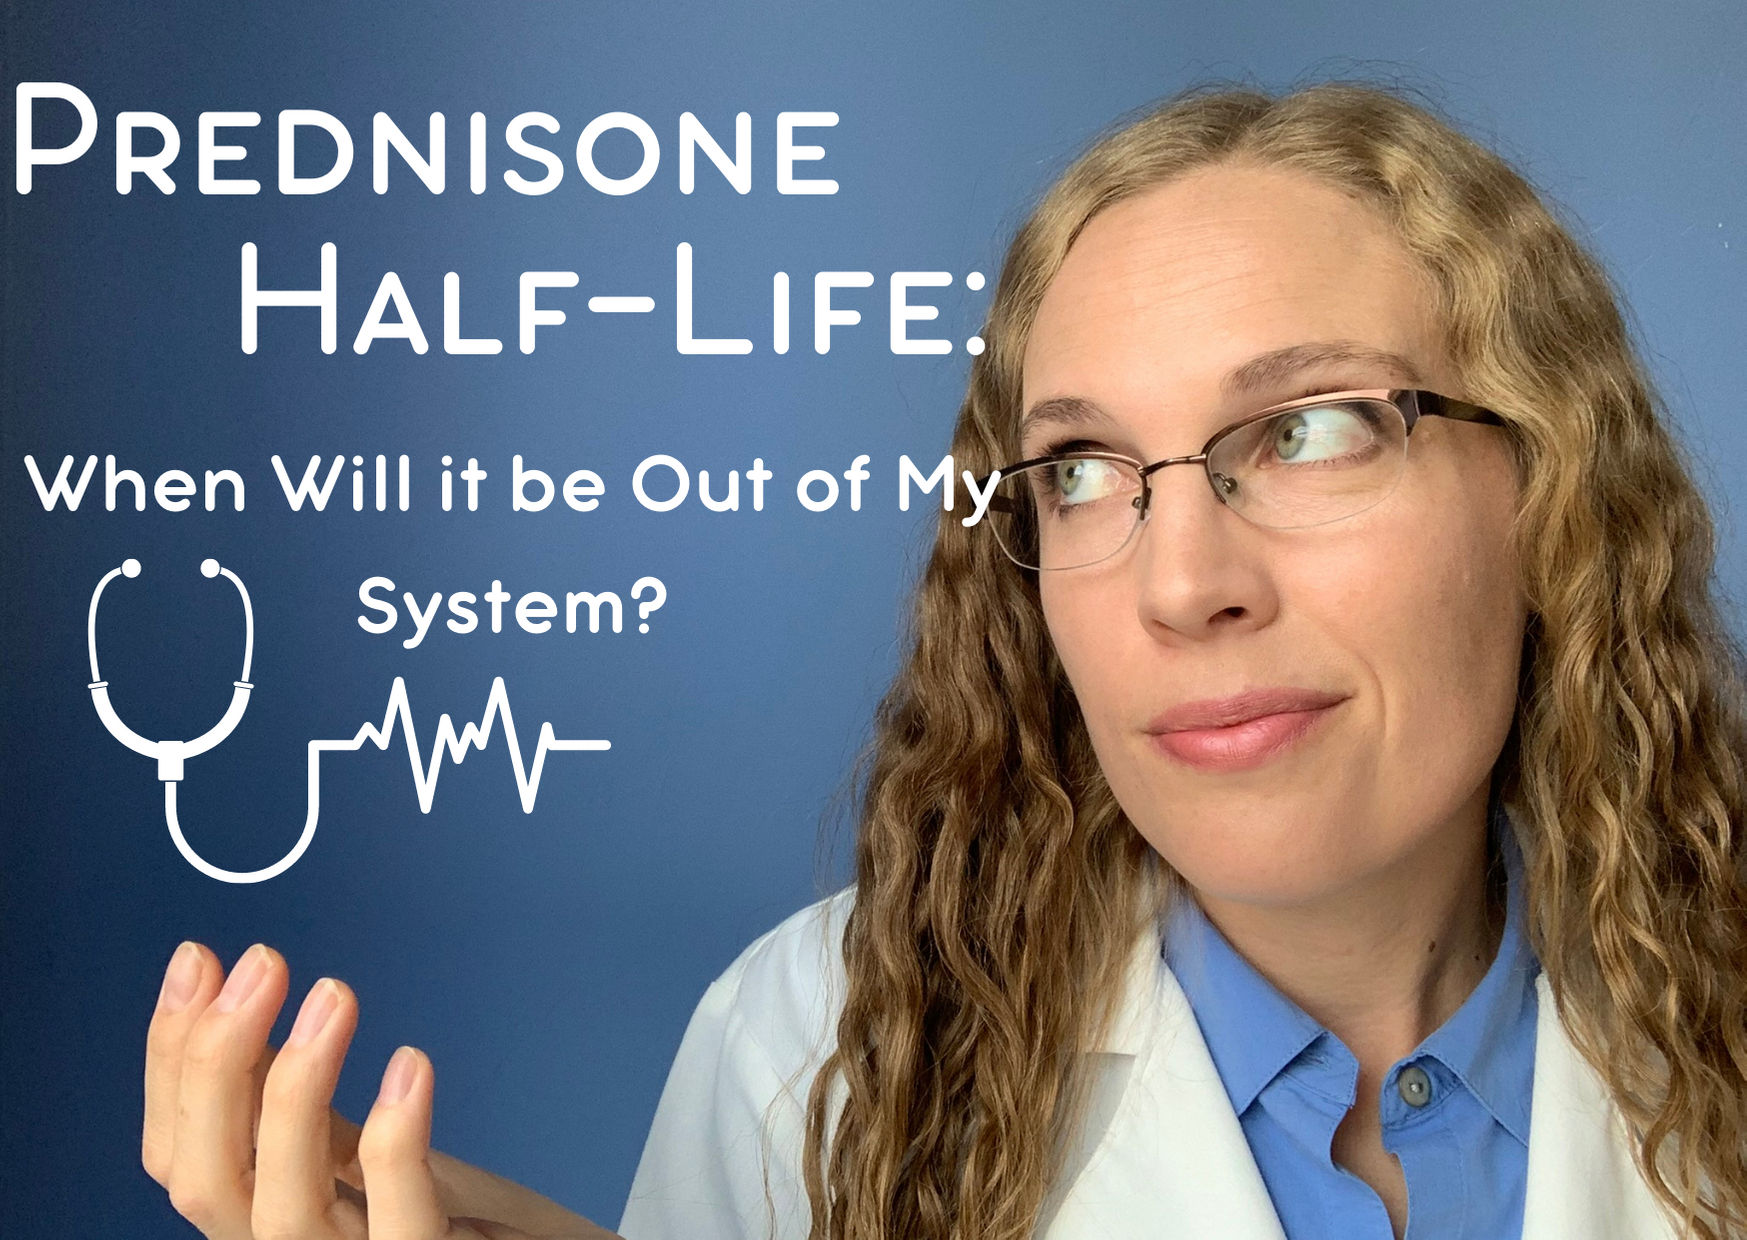 Prednisone Half-Life: When Will it Be Out of My System?